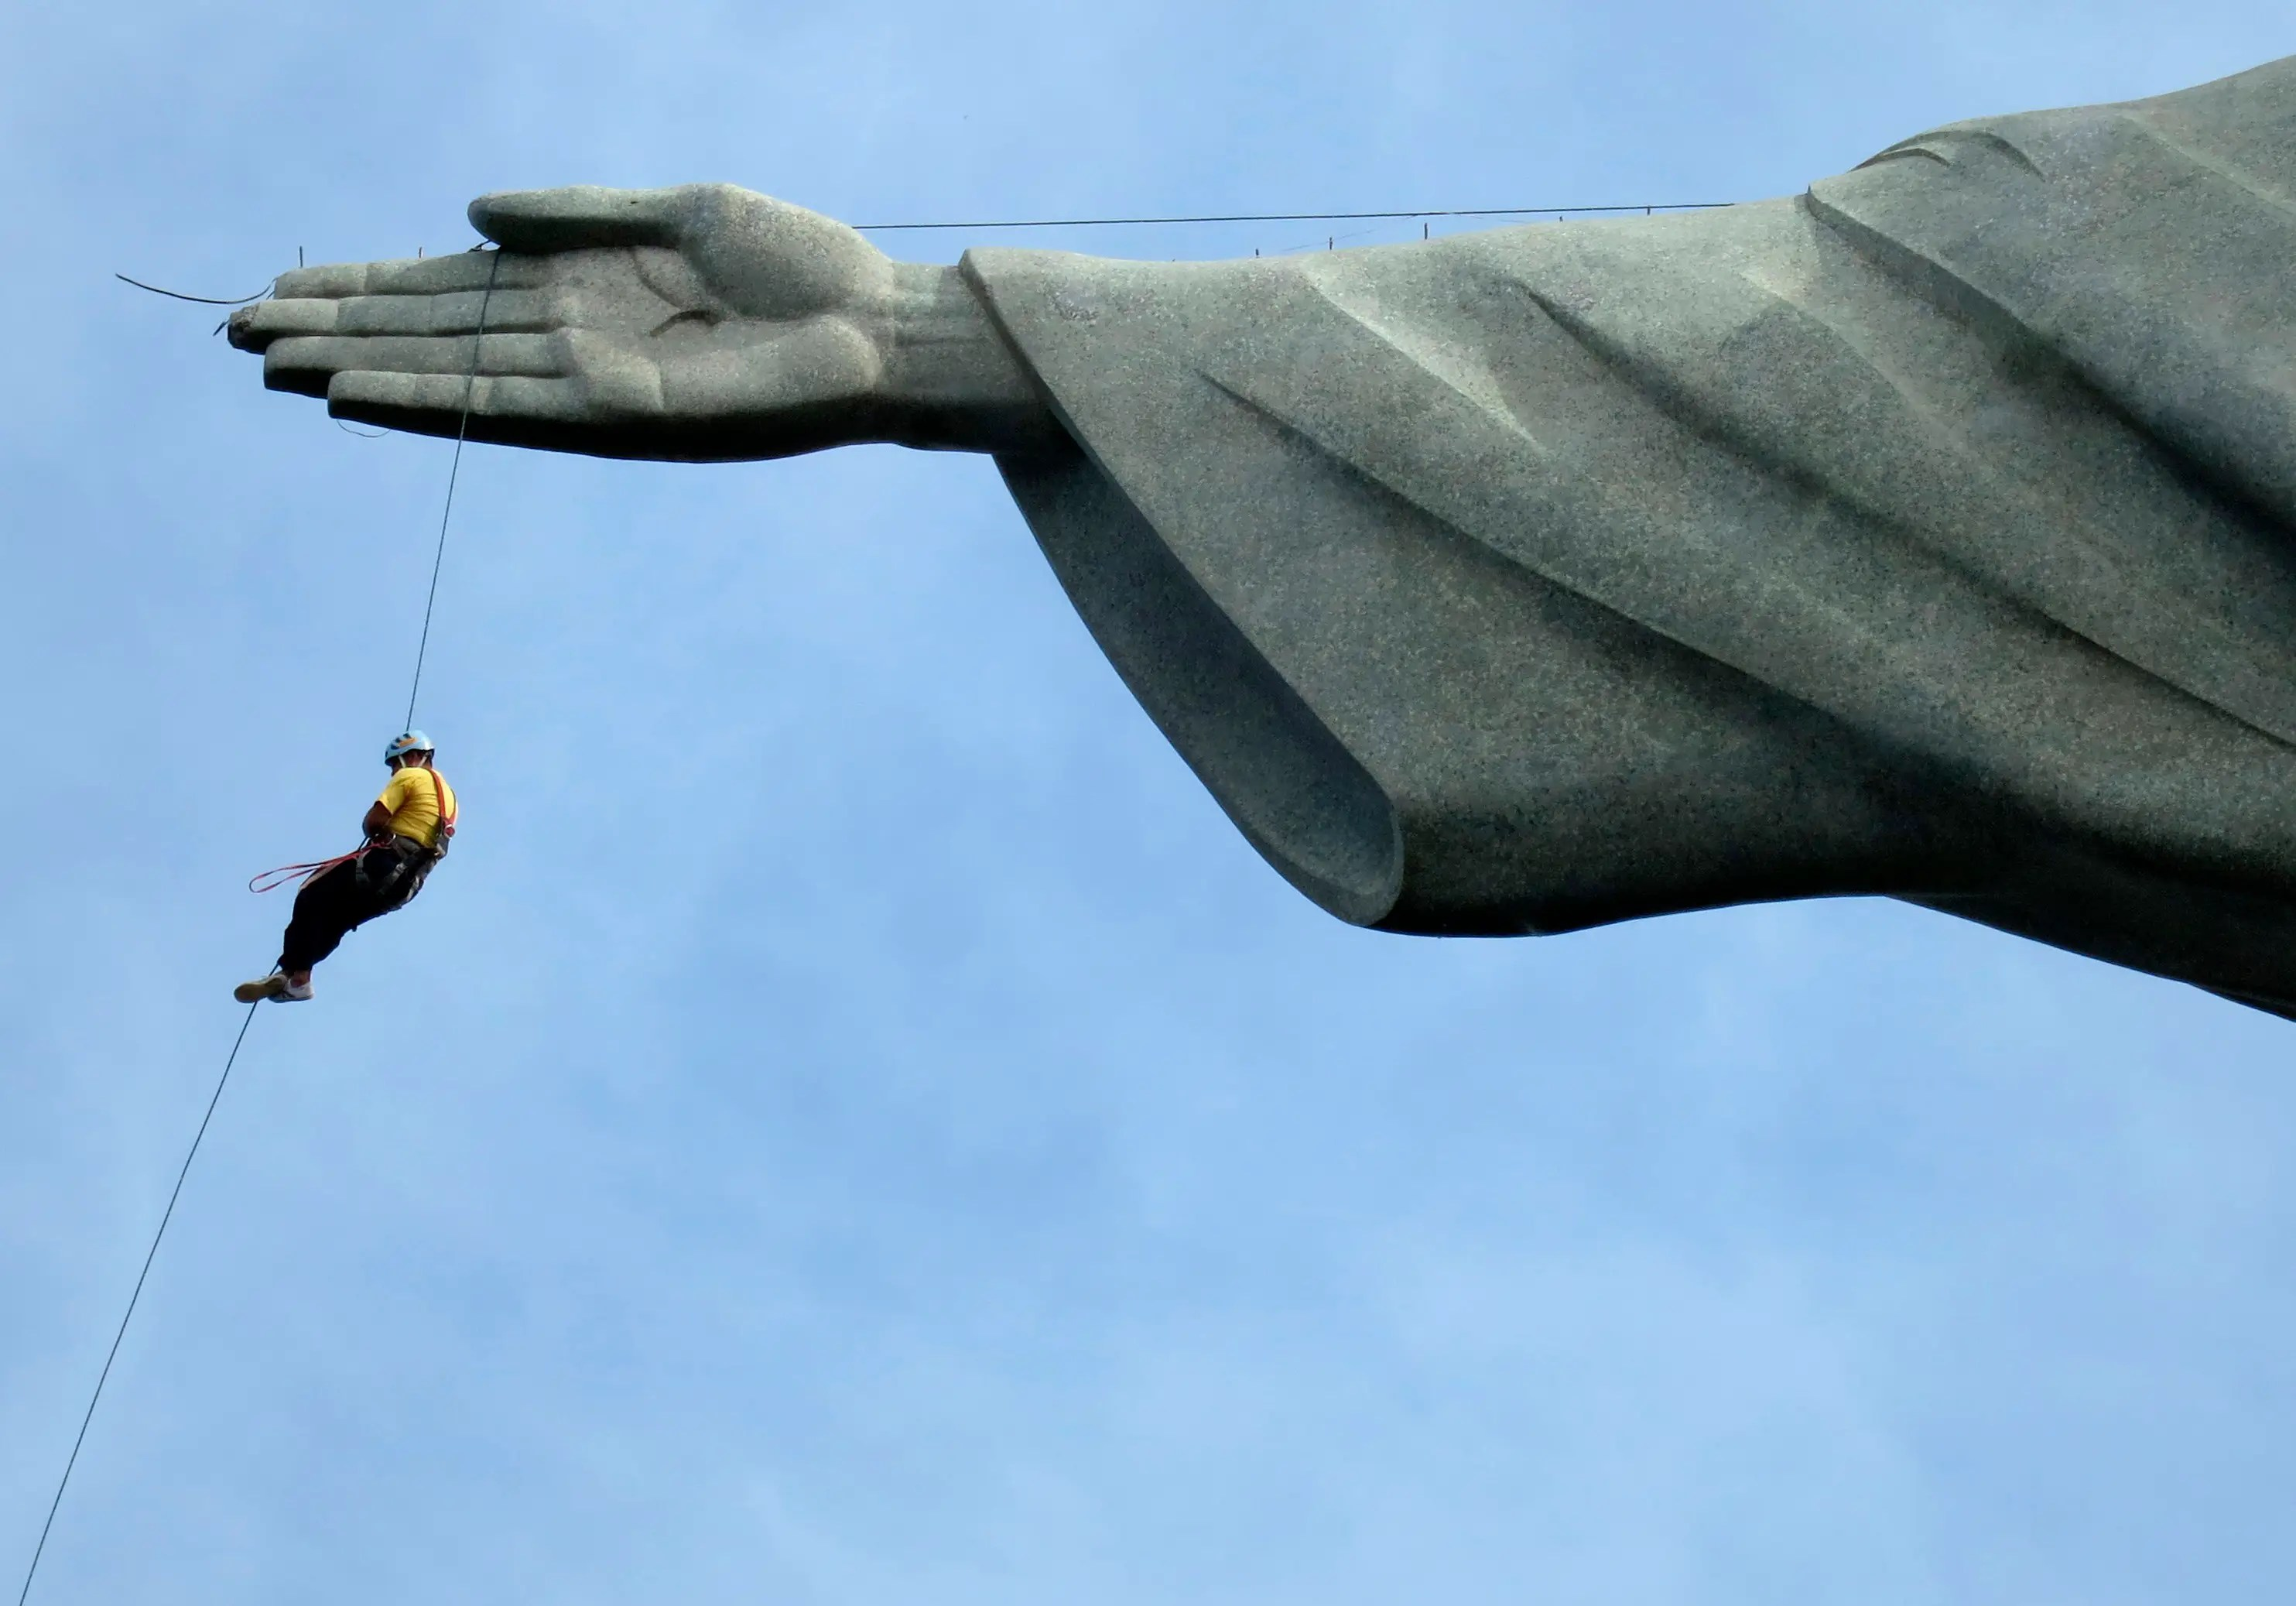 A worker rappels from the Cristo Redentor statue at the Corcovado in Rio de Janeiro.